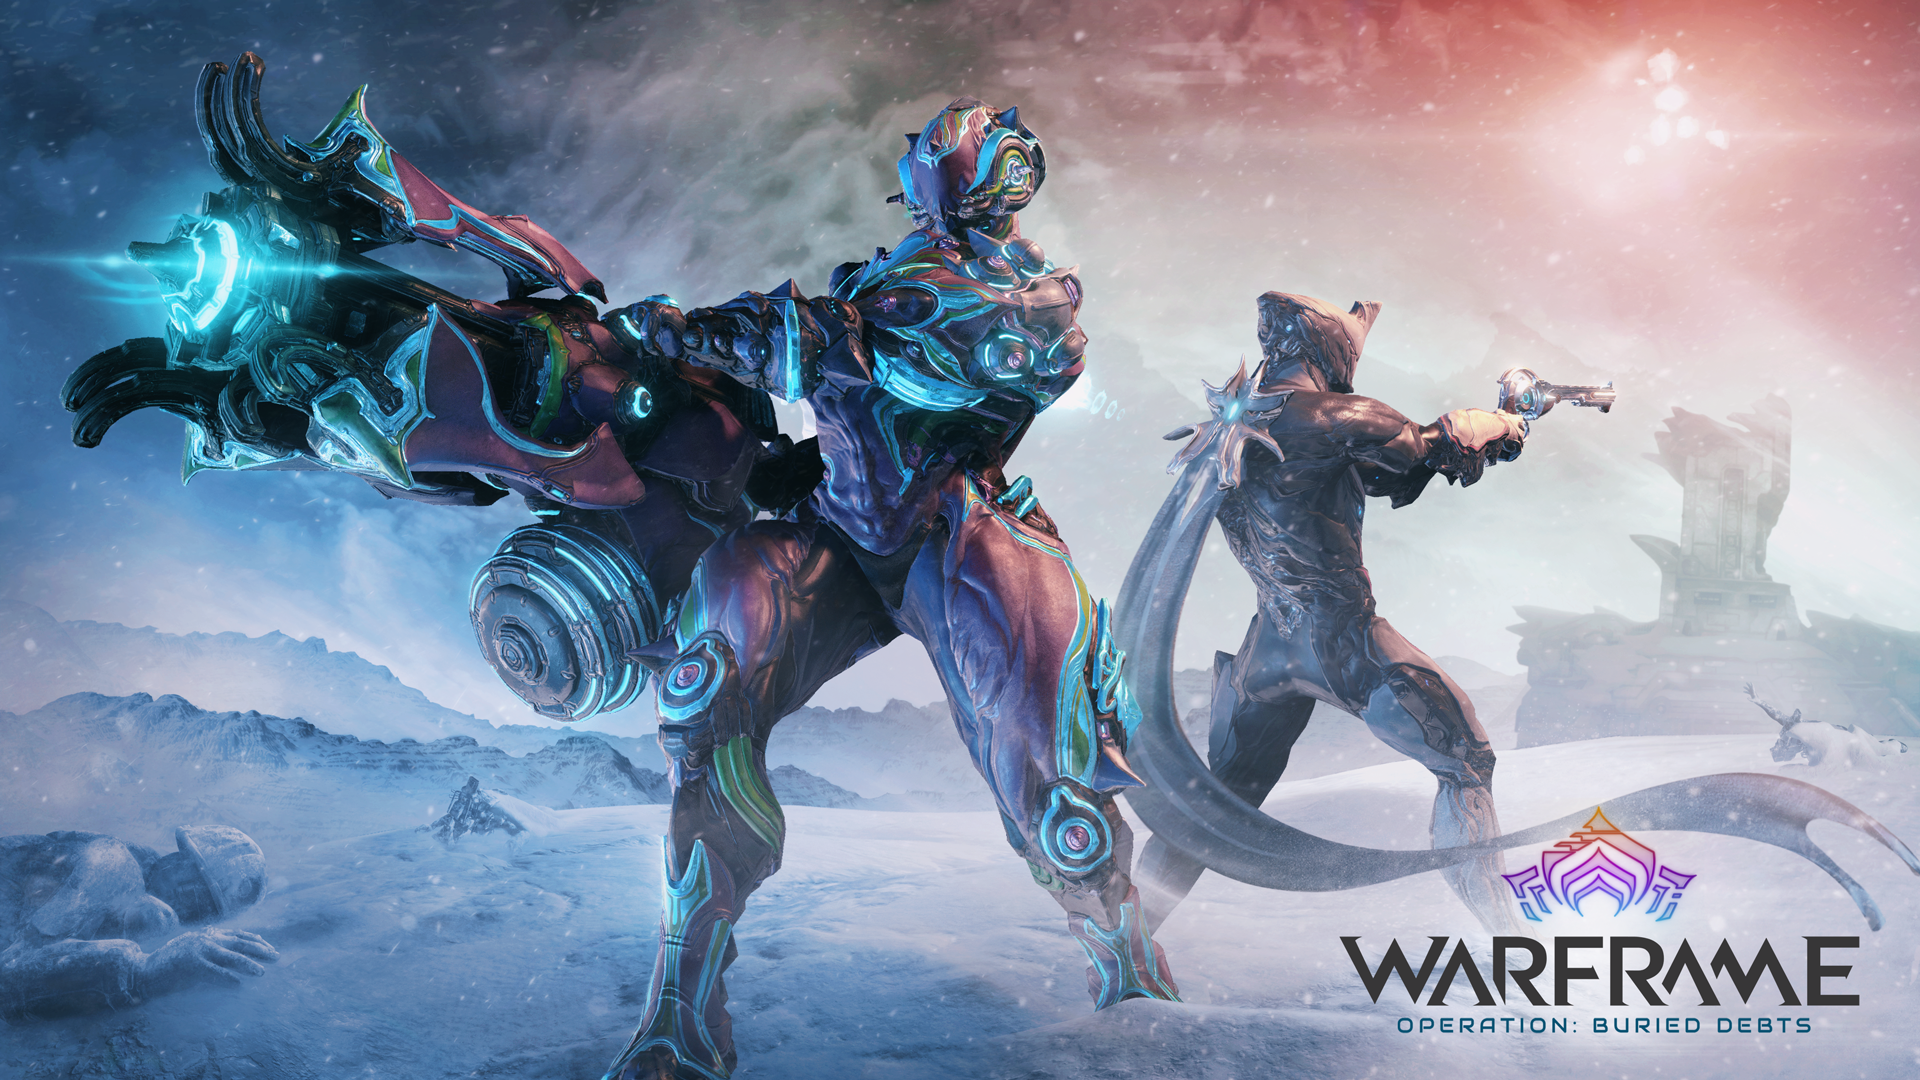 Warframe_OperationBuriedDebts_KeyArt_1080p-1